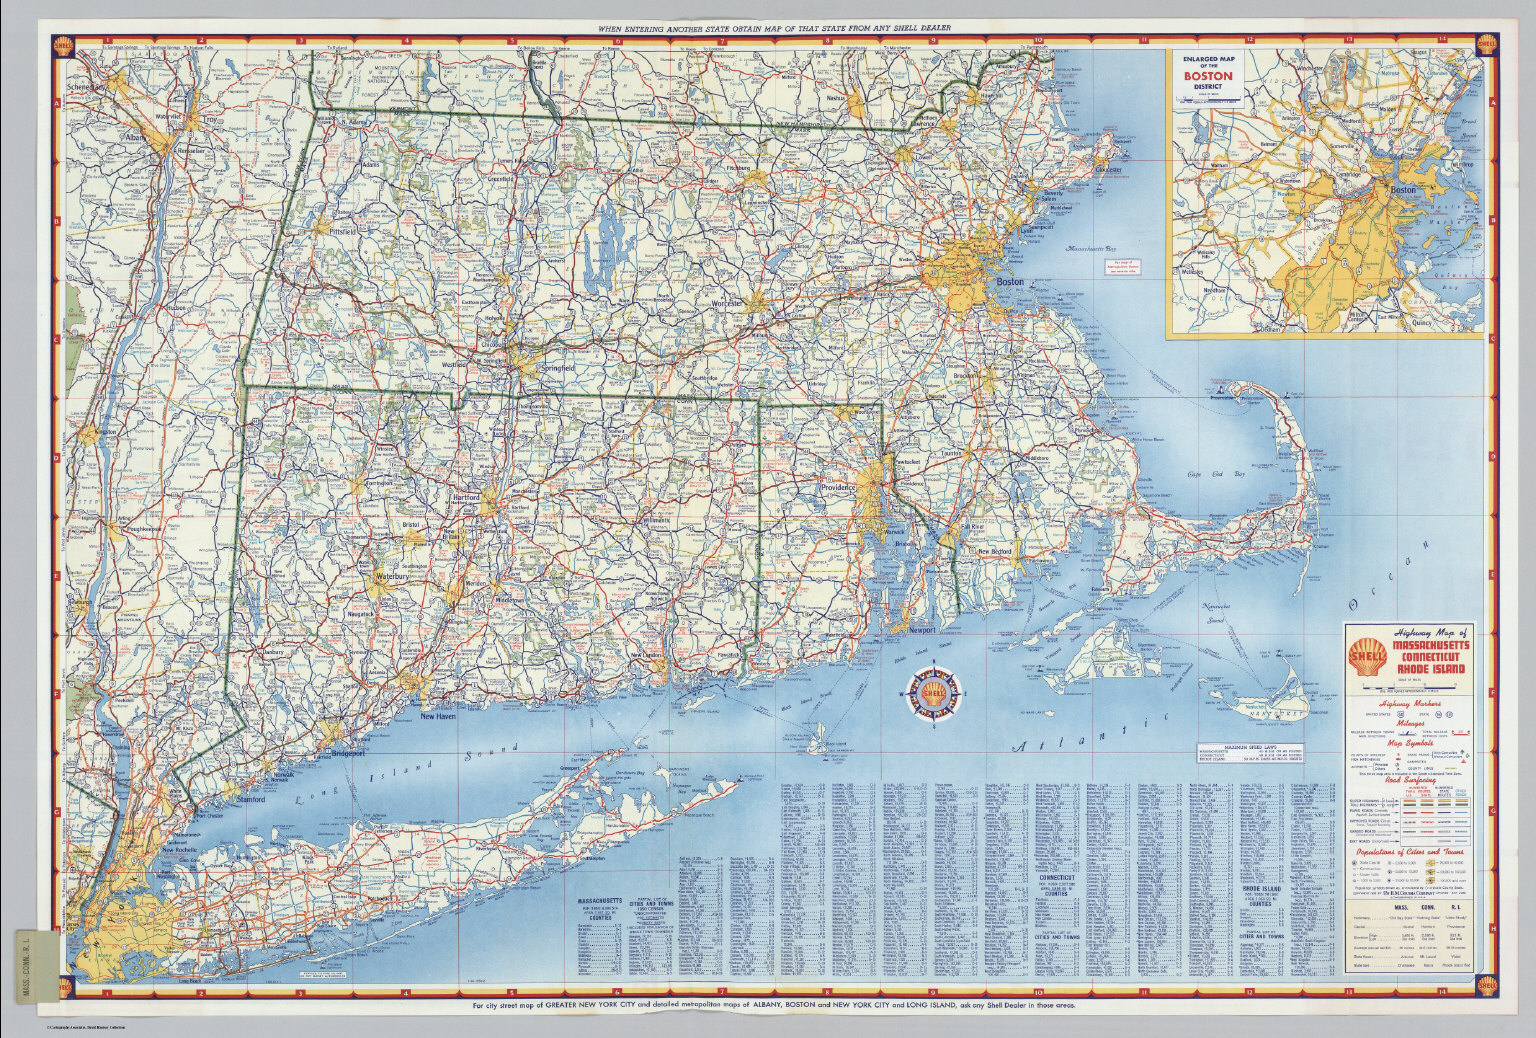 Shell Highway Map Of Massachusetts Connecticut Rhode Island - Massachusetts map